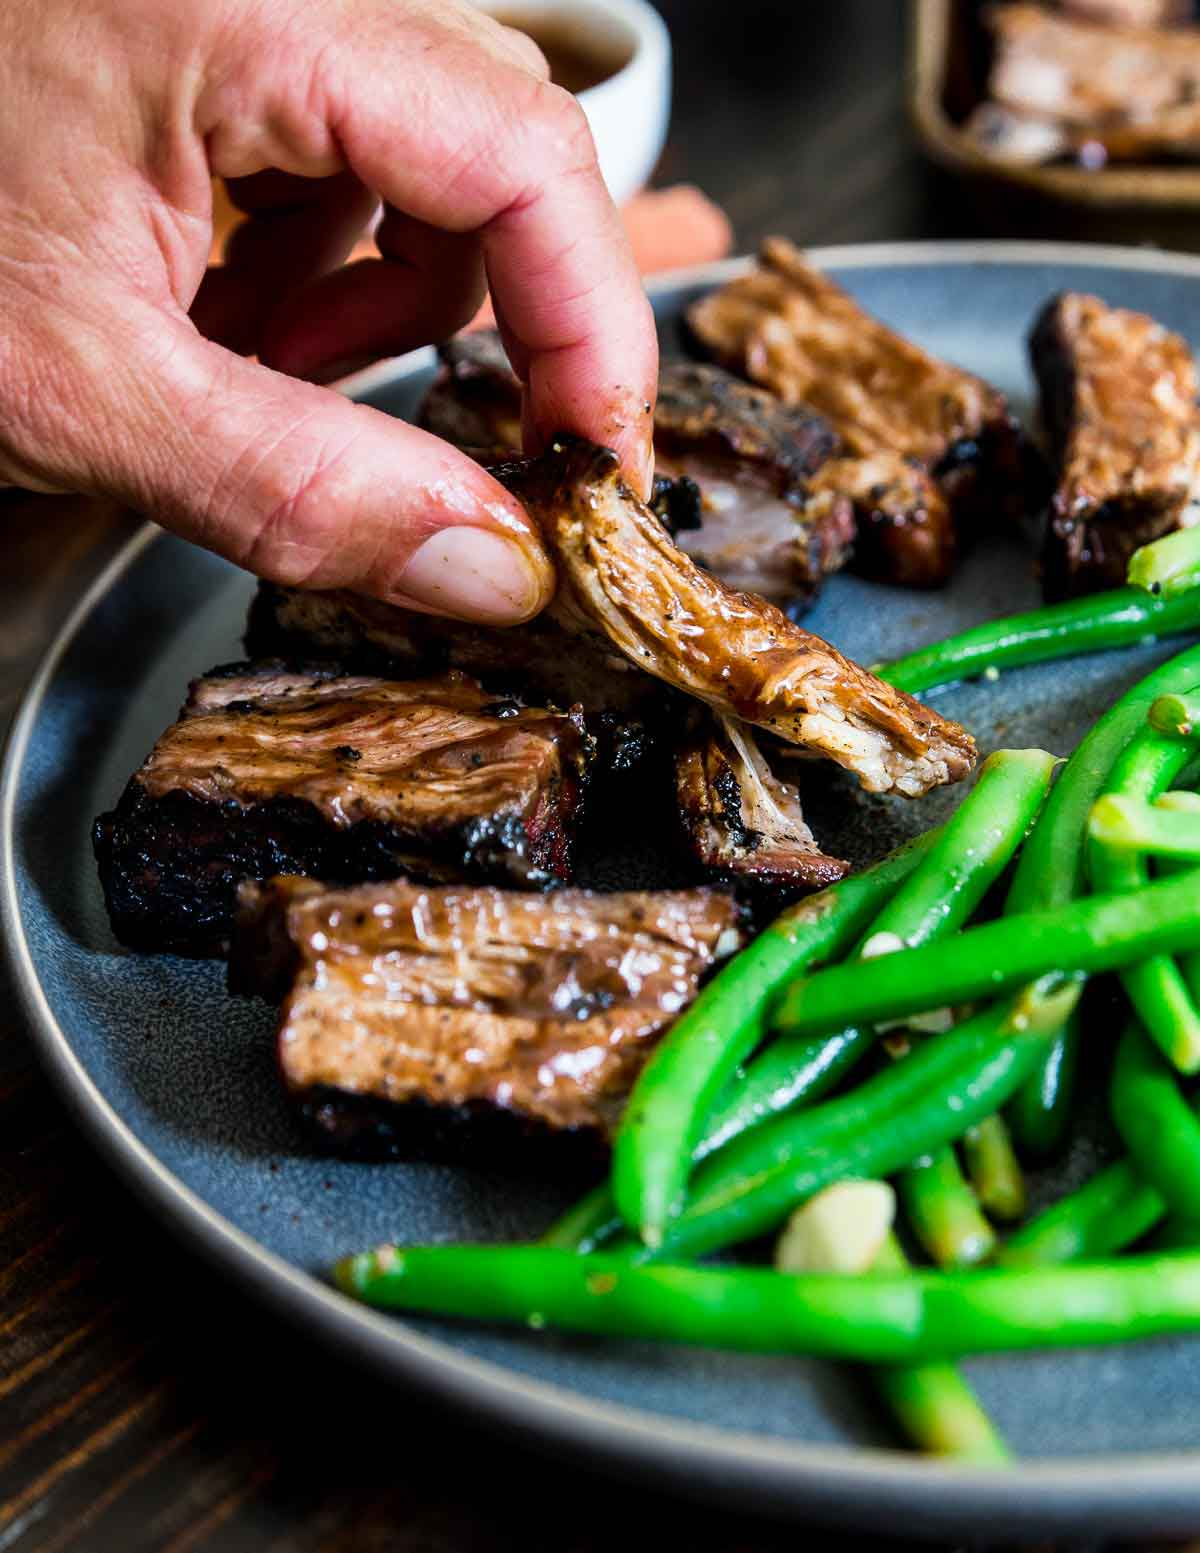 Slathered in BBQ spices and sauce, these grilled lamb riblets are a delicious summer meal.